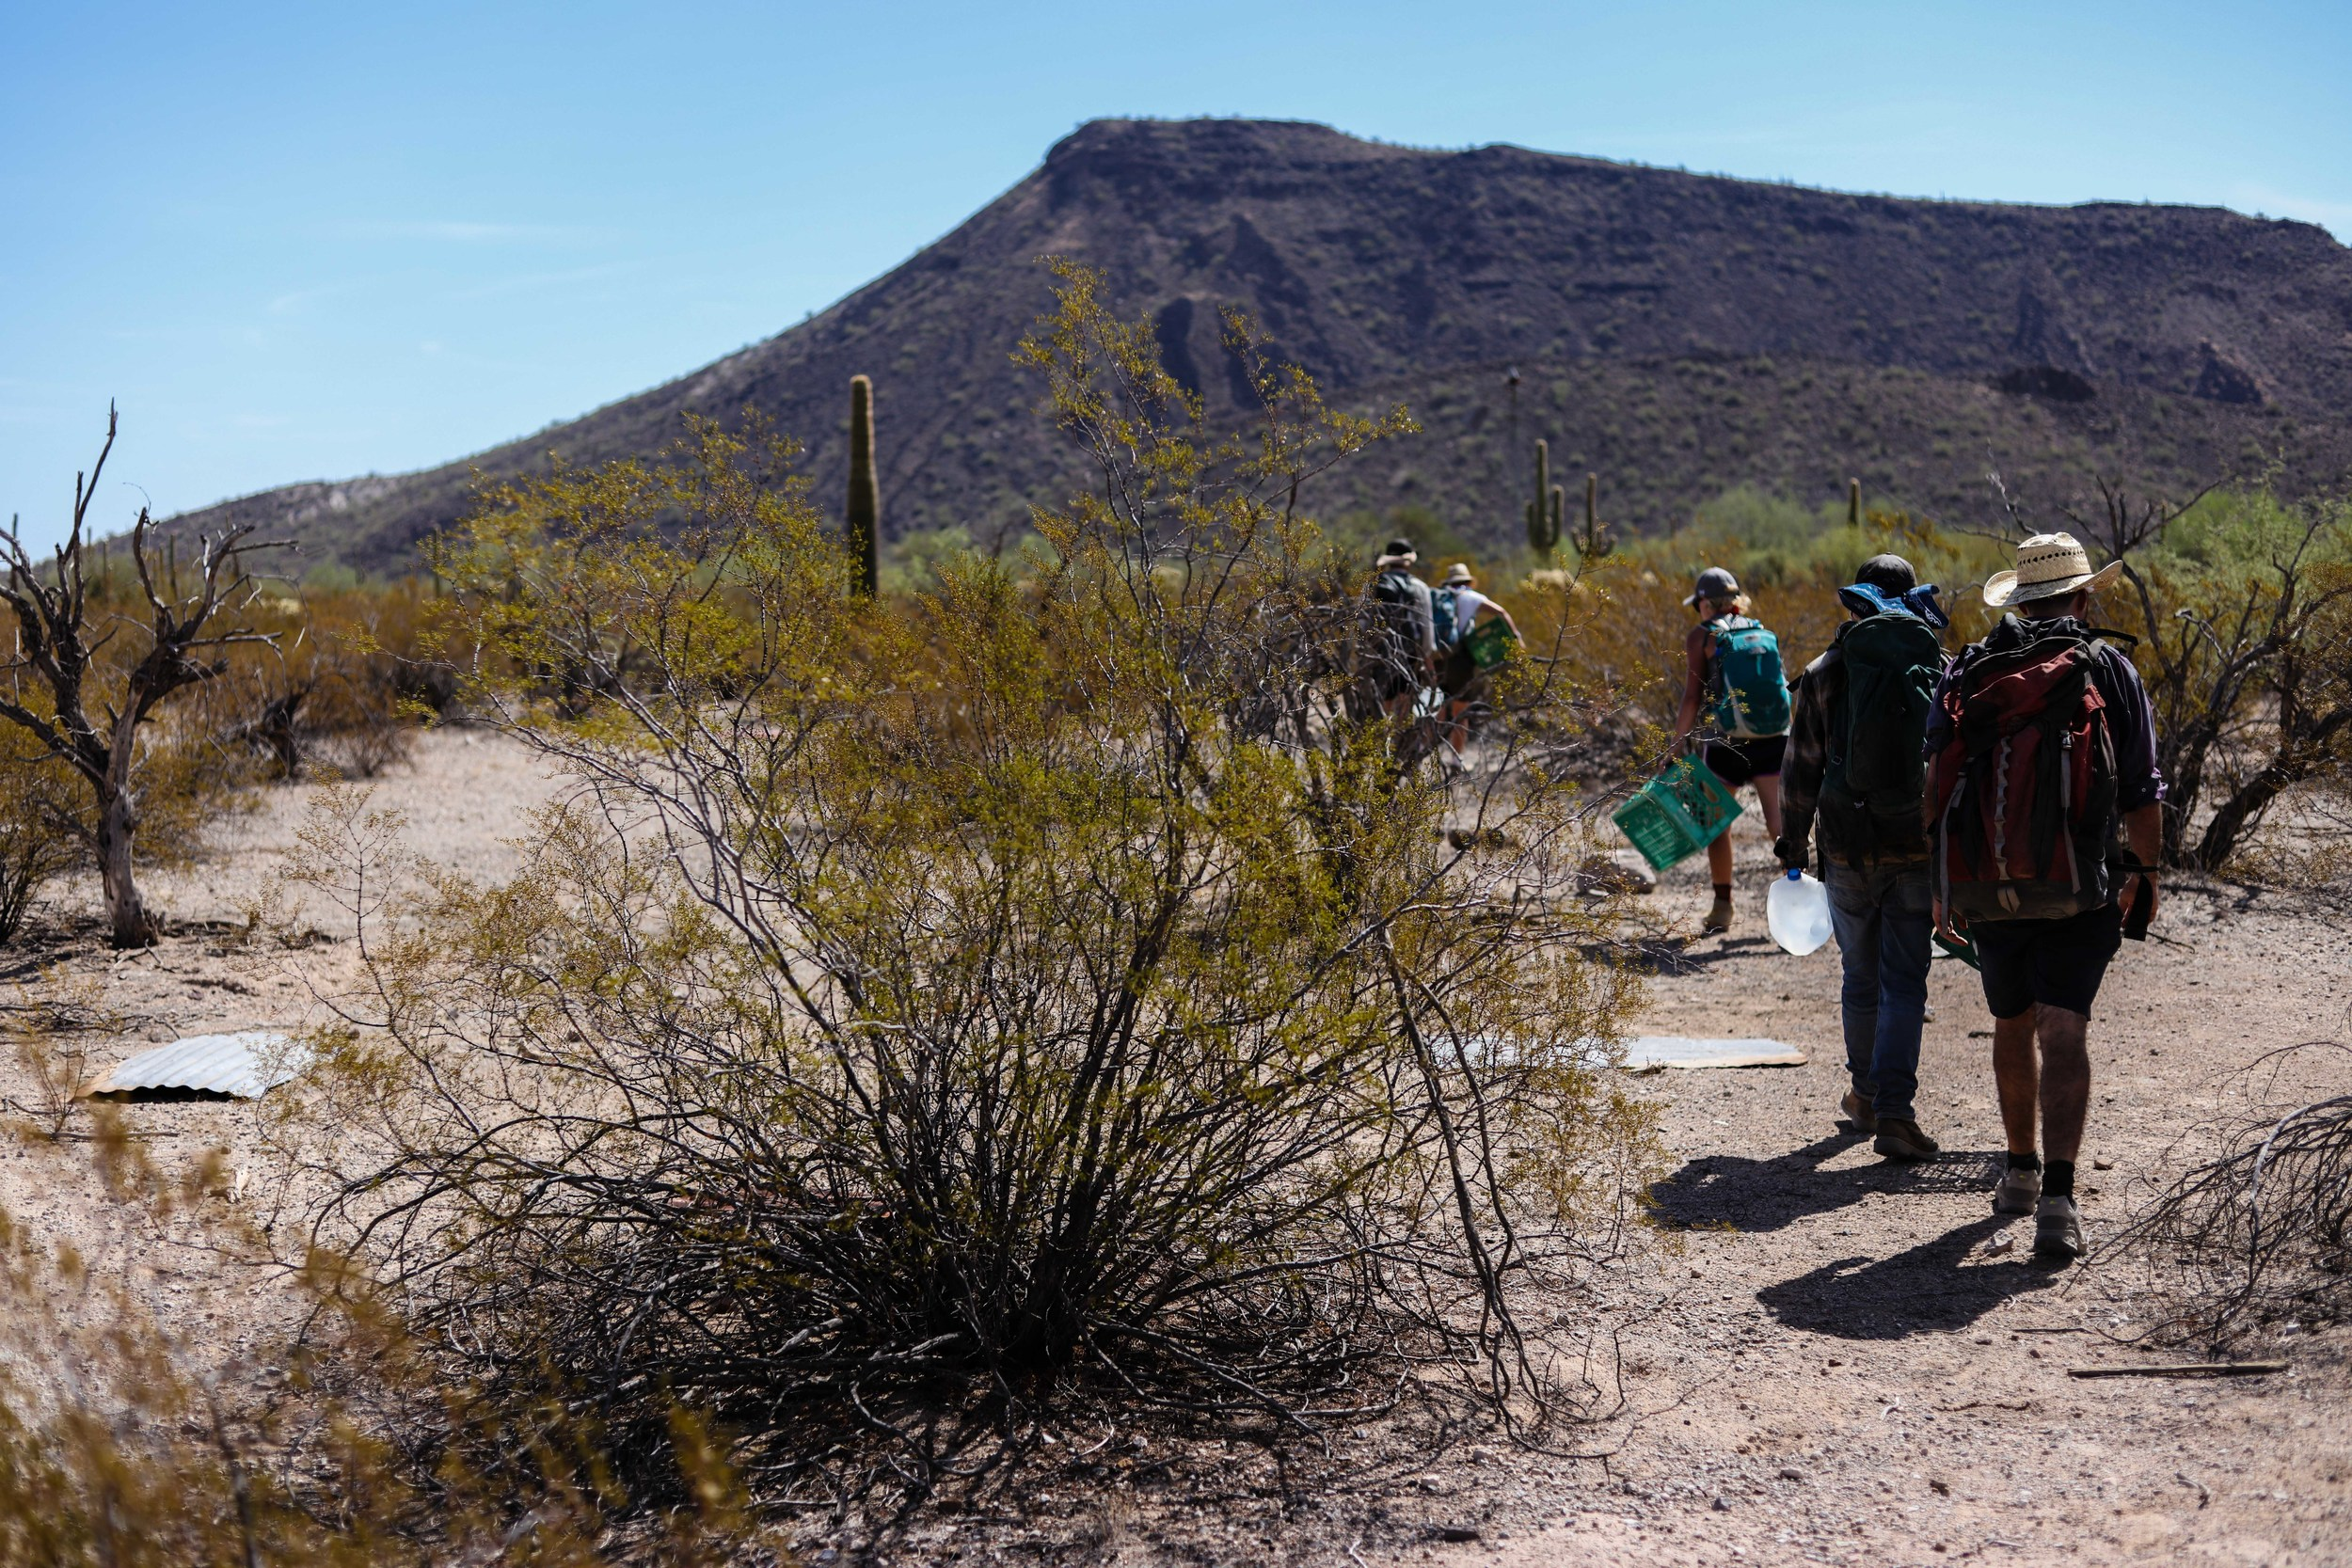 No More Deaths coordinates volunteers in teams. Each team consists of at least one Spanish speaker, one medically trained individual, as well as support members. The team aspect is essential to the work No More Deaths does, as the heat and terrain can make the work exceedingly dangerous.